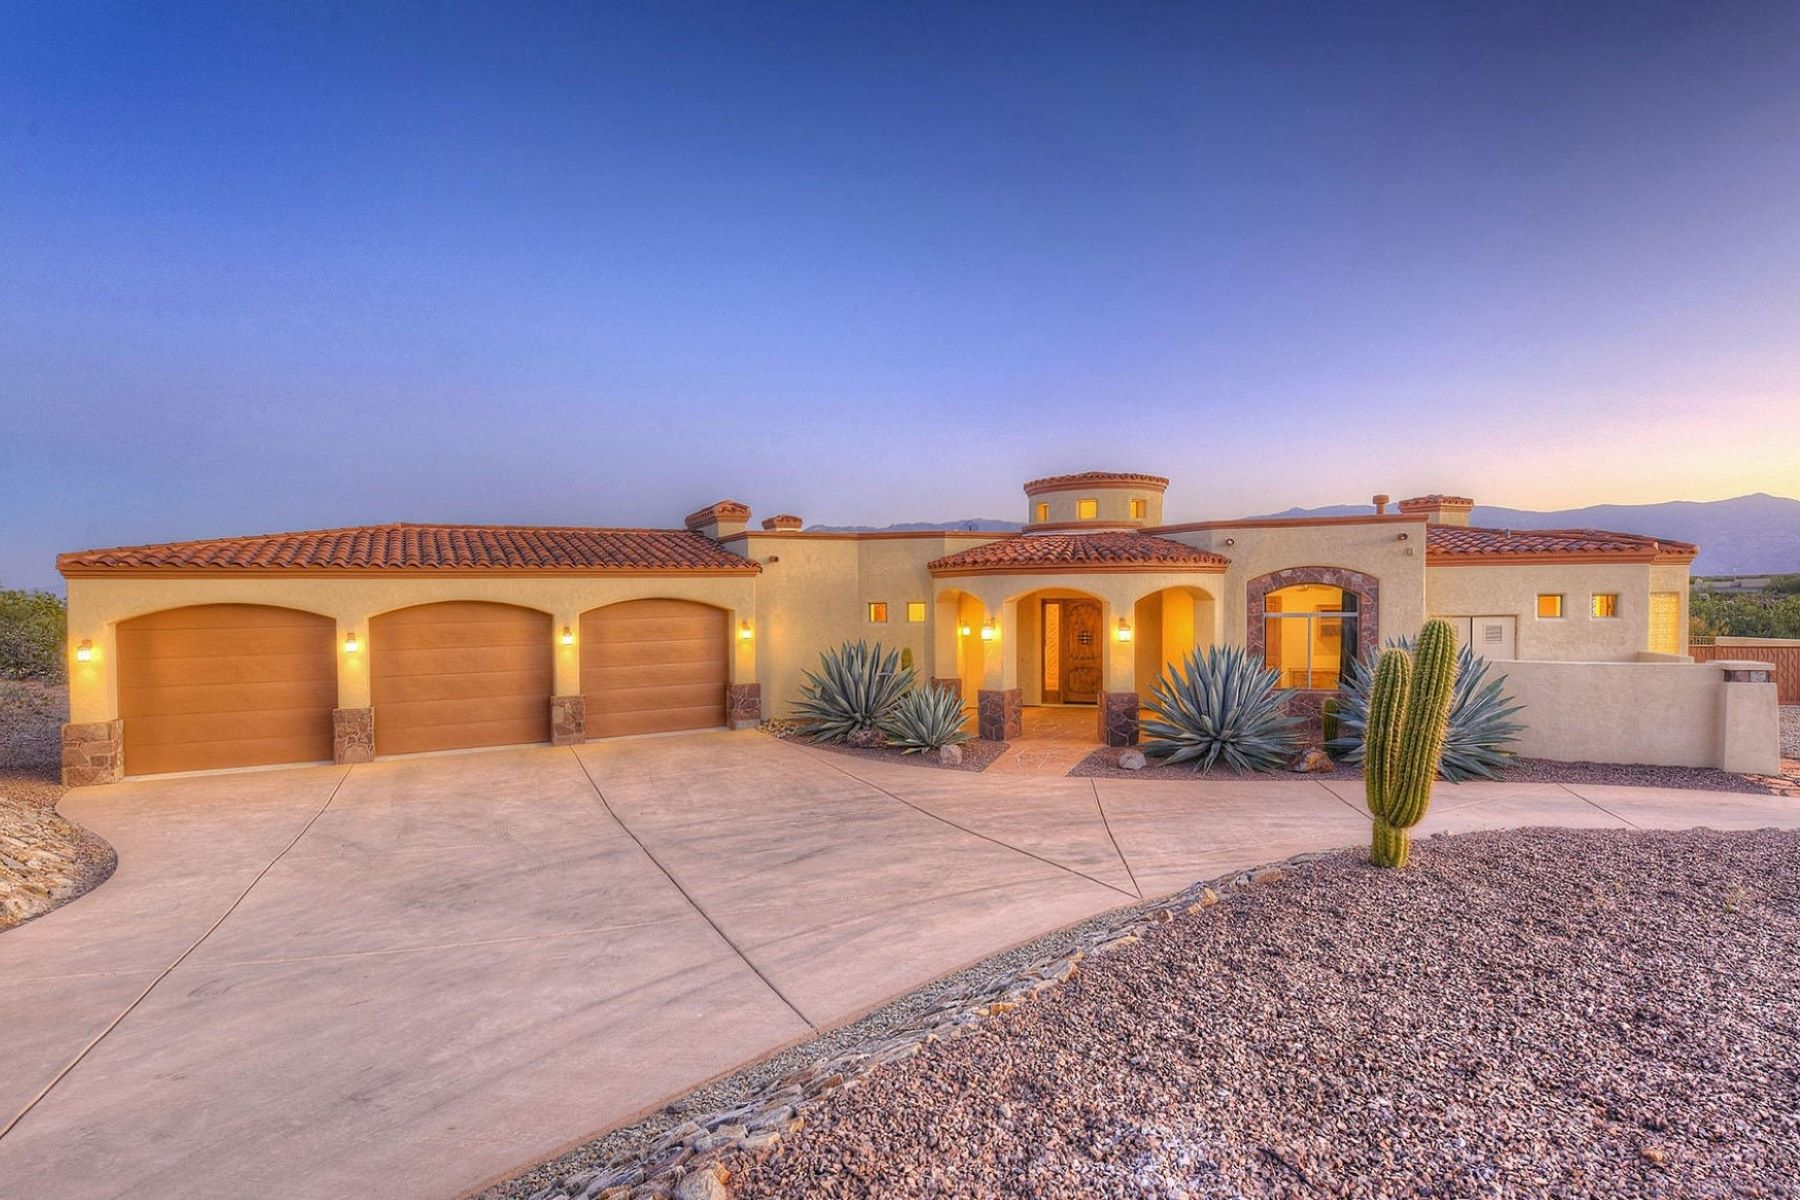 Single Family Homes for Sale at Gorgeous Views of the Rincons 9440 S Old Soldier Trail Vail, Arizona 85641 United States